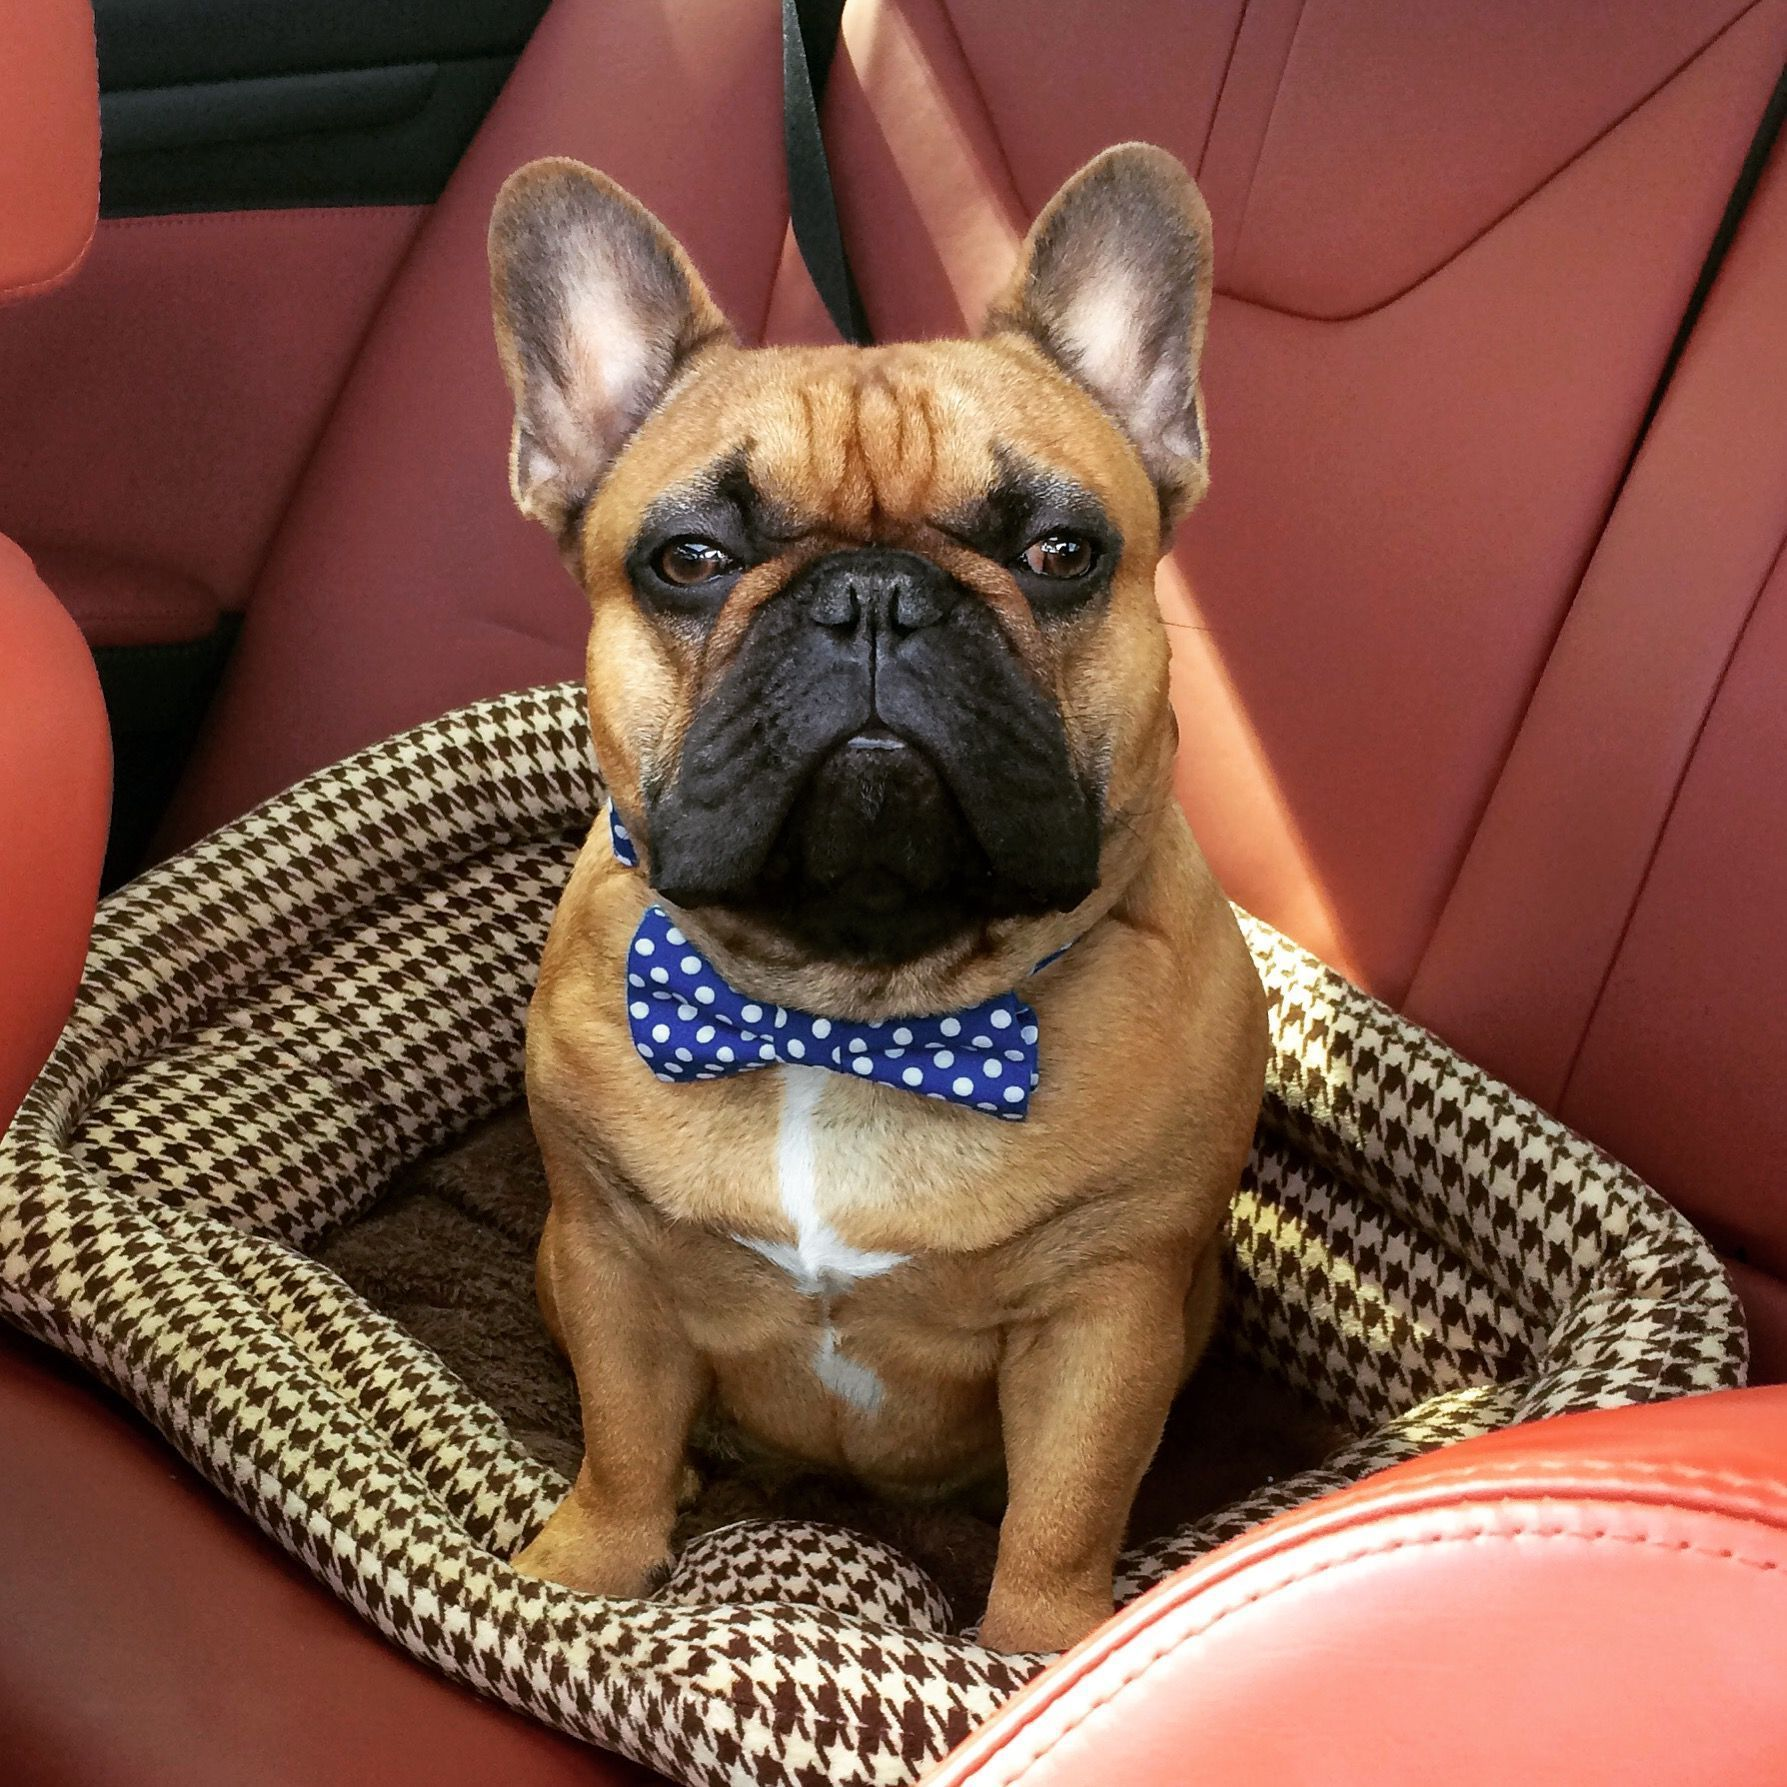 The Most Handsome And Majestic French Bulldog Buldog Buldog